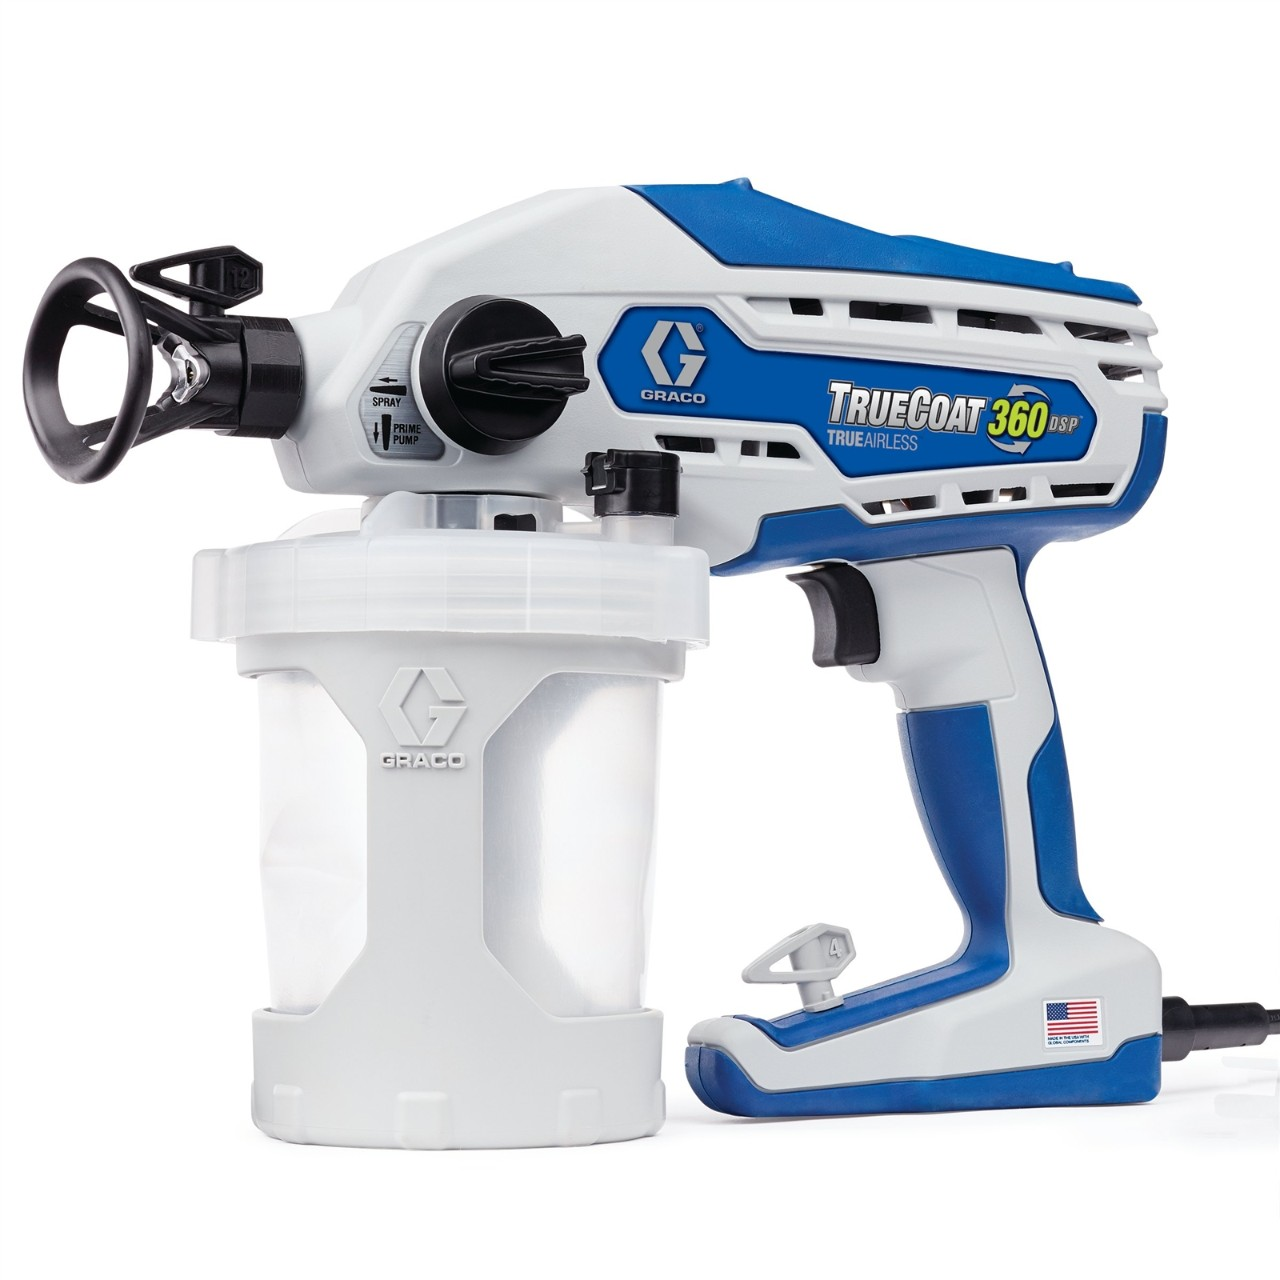 TrueCoat 360 DSP Electric TrueAirless Sprayer